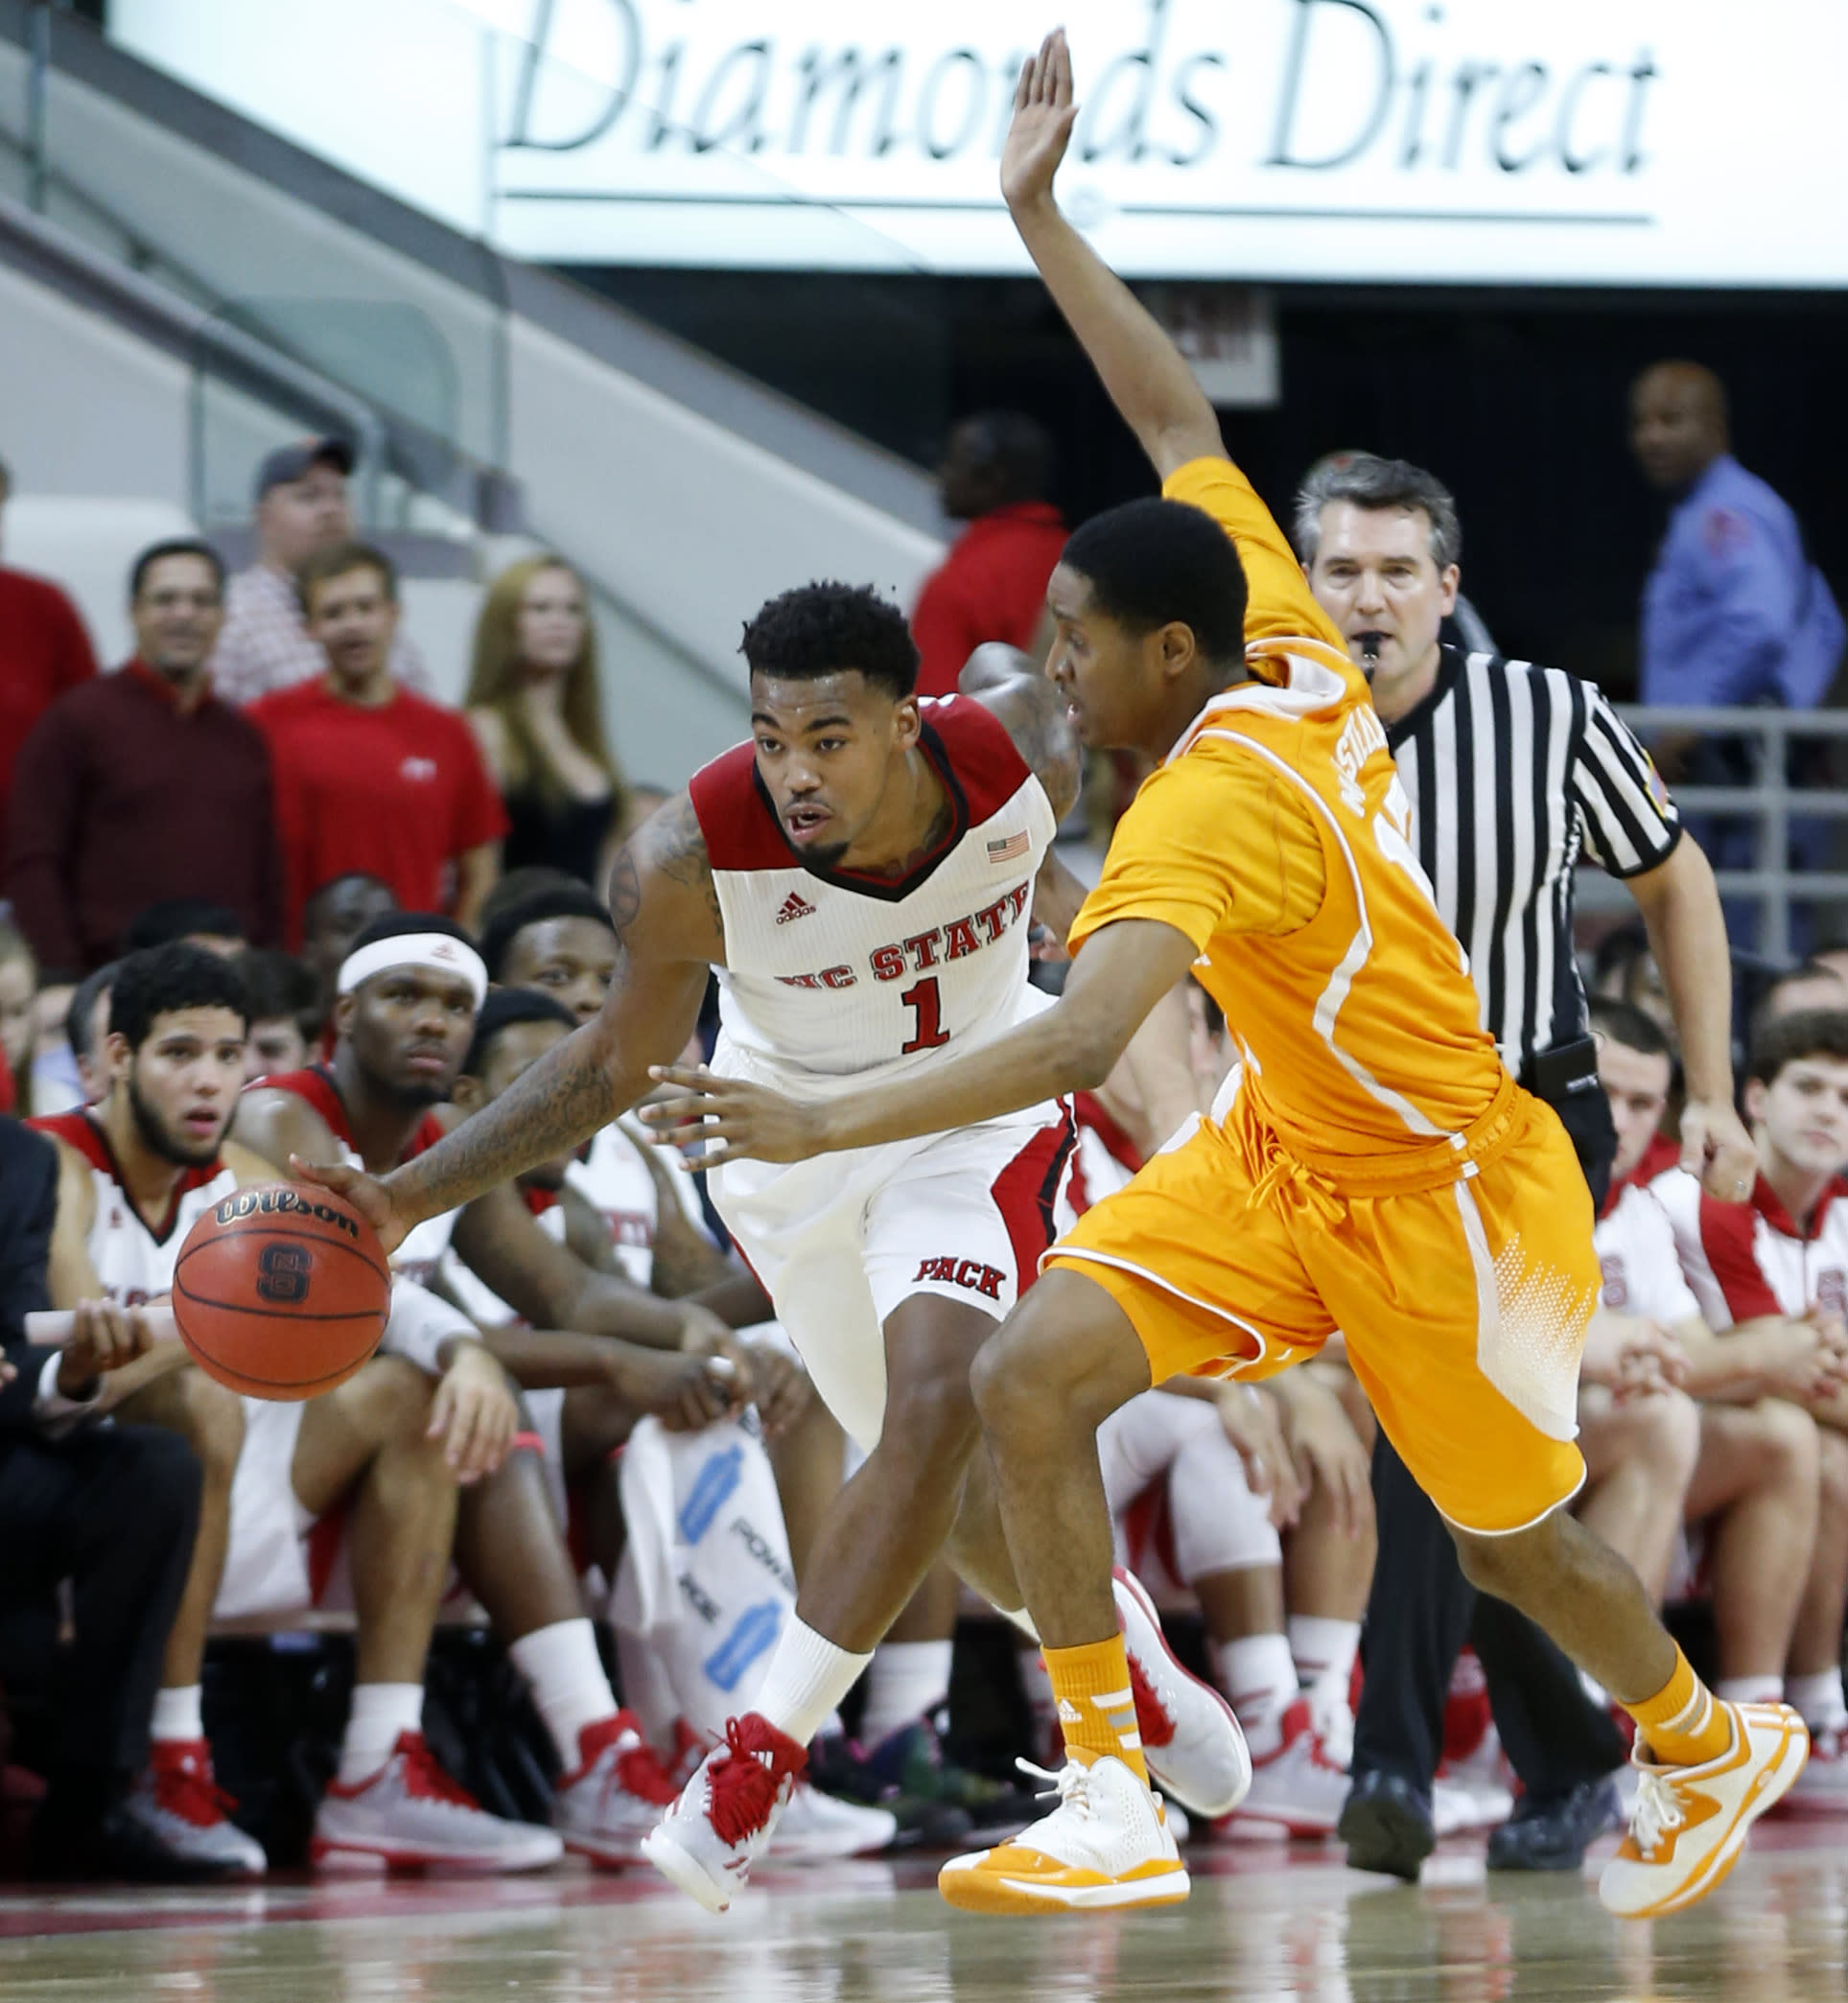 NC State beats Tennessee 83-72